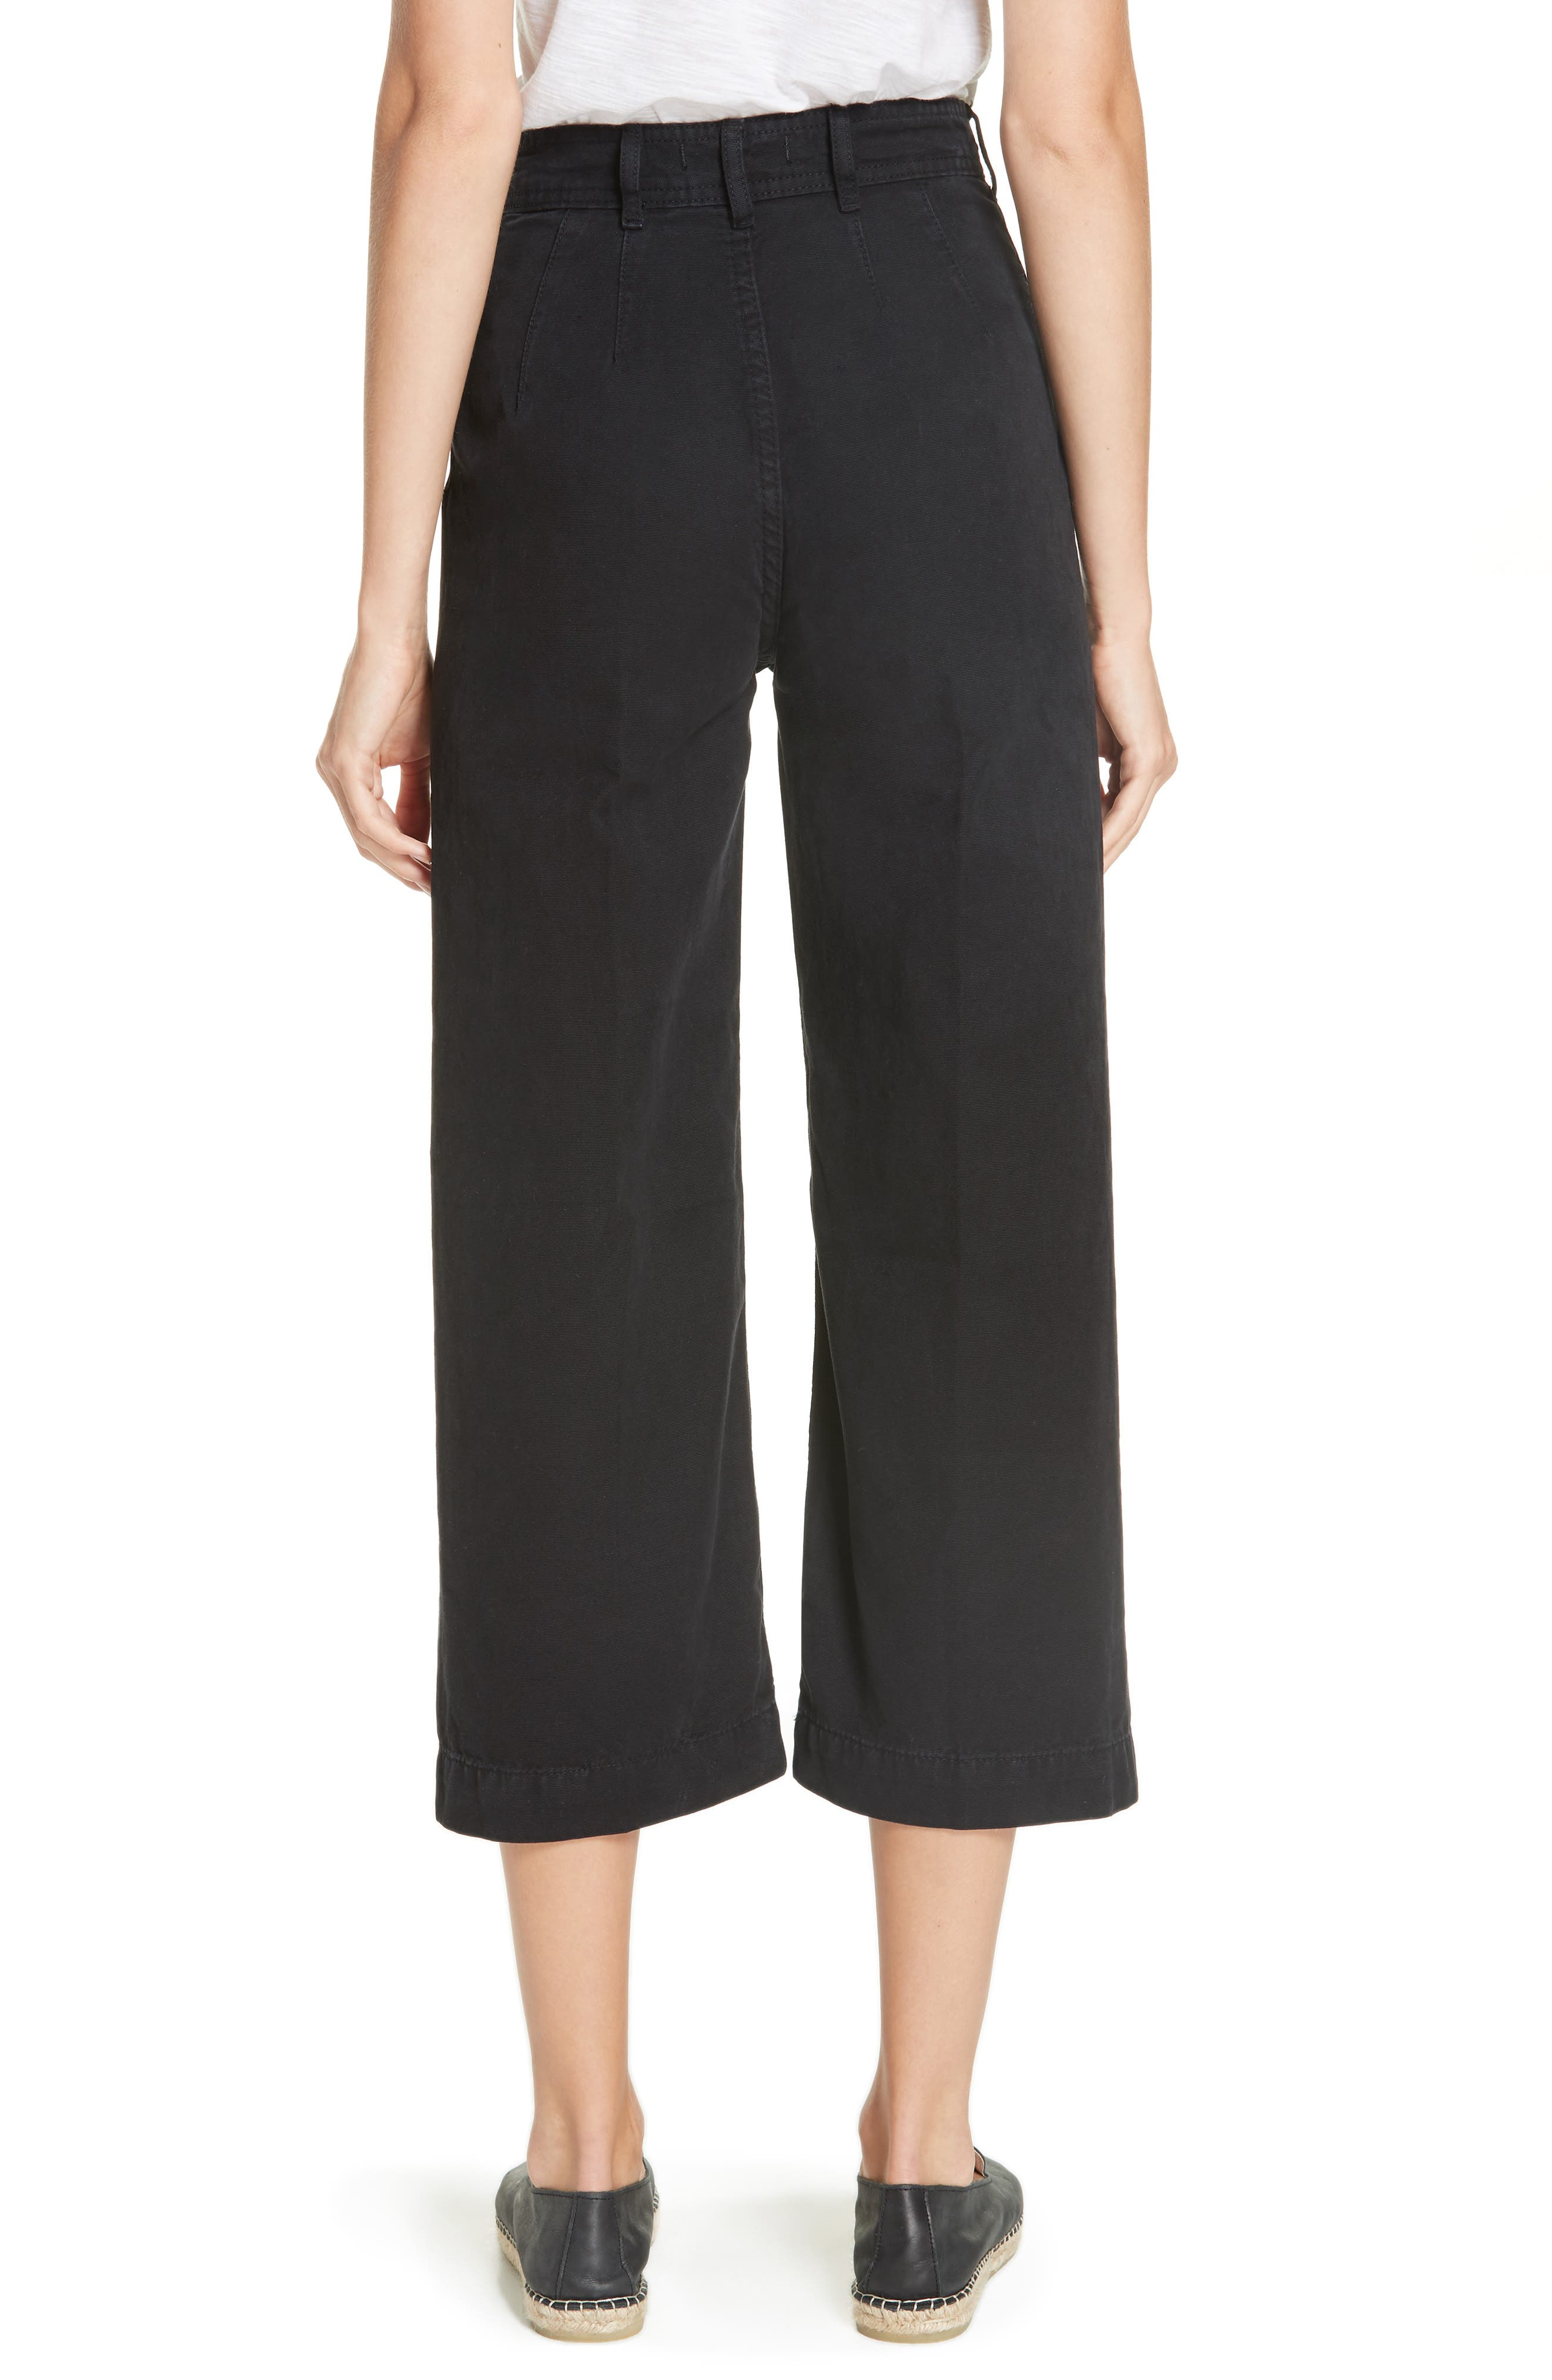 FREE PEOPLE, We the Free by Free People Patti Crop Cotton Pants, Alternate thumbnail 2, color, 001